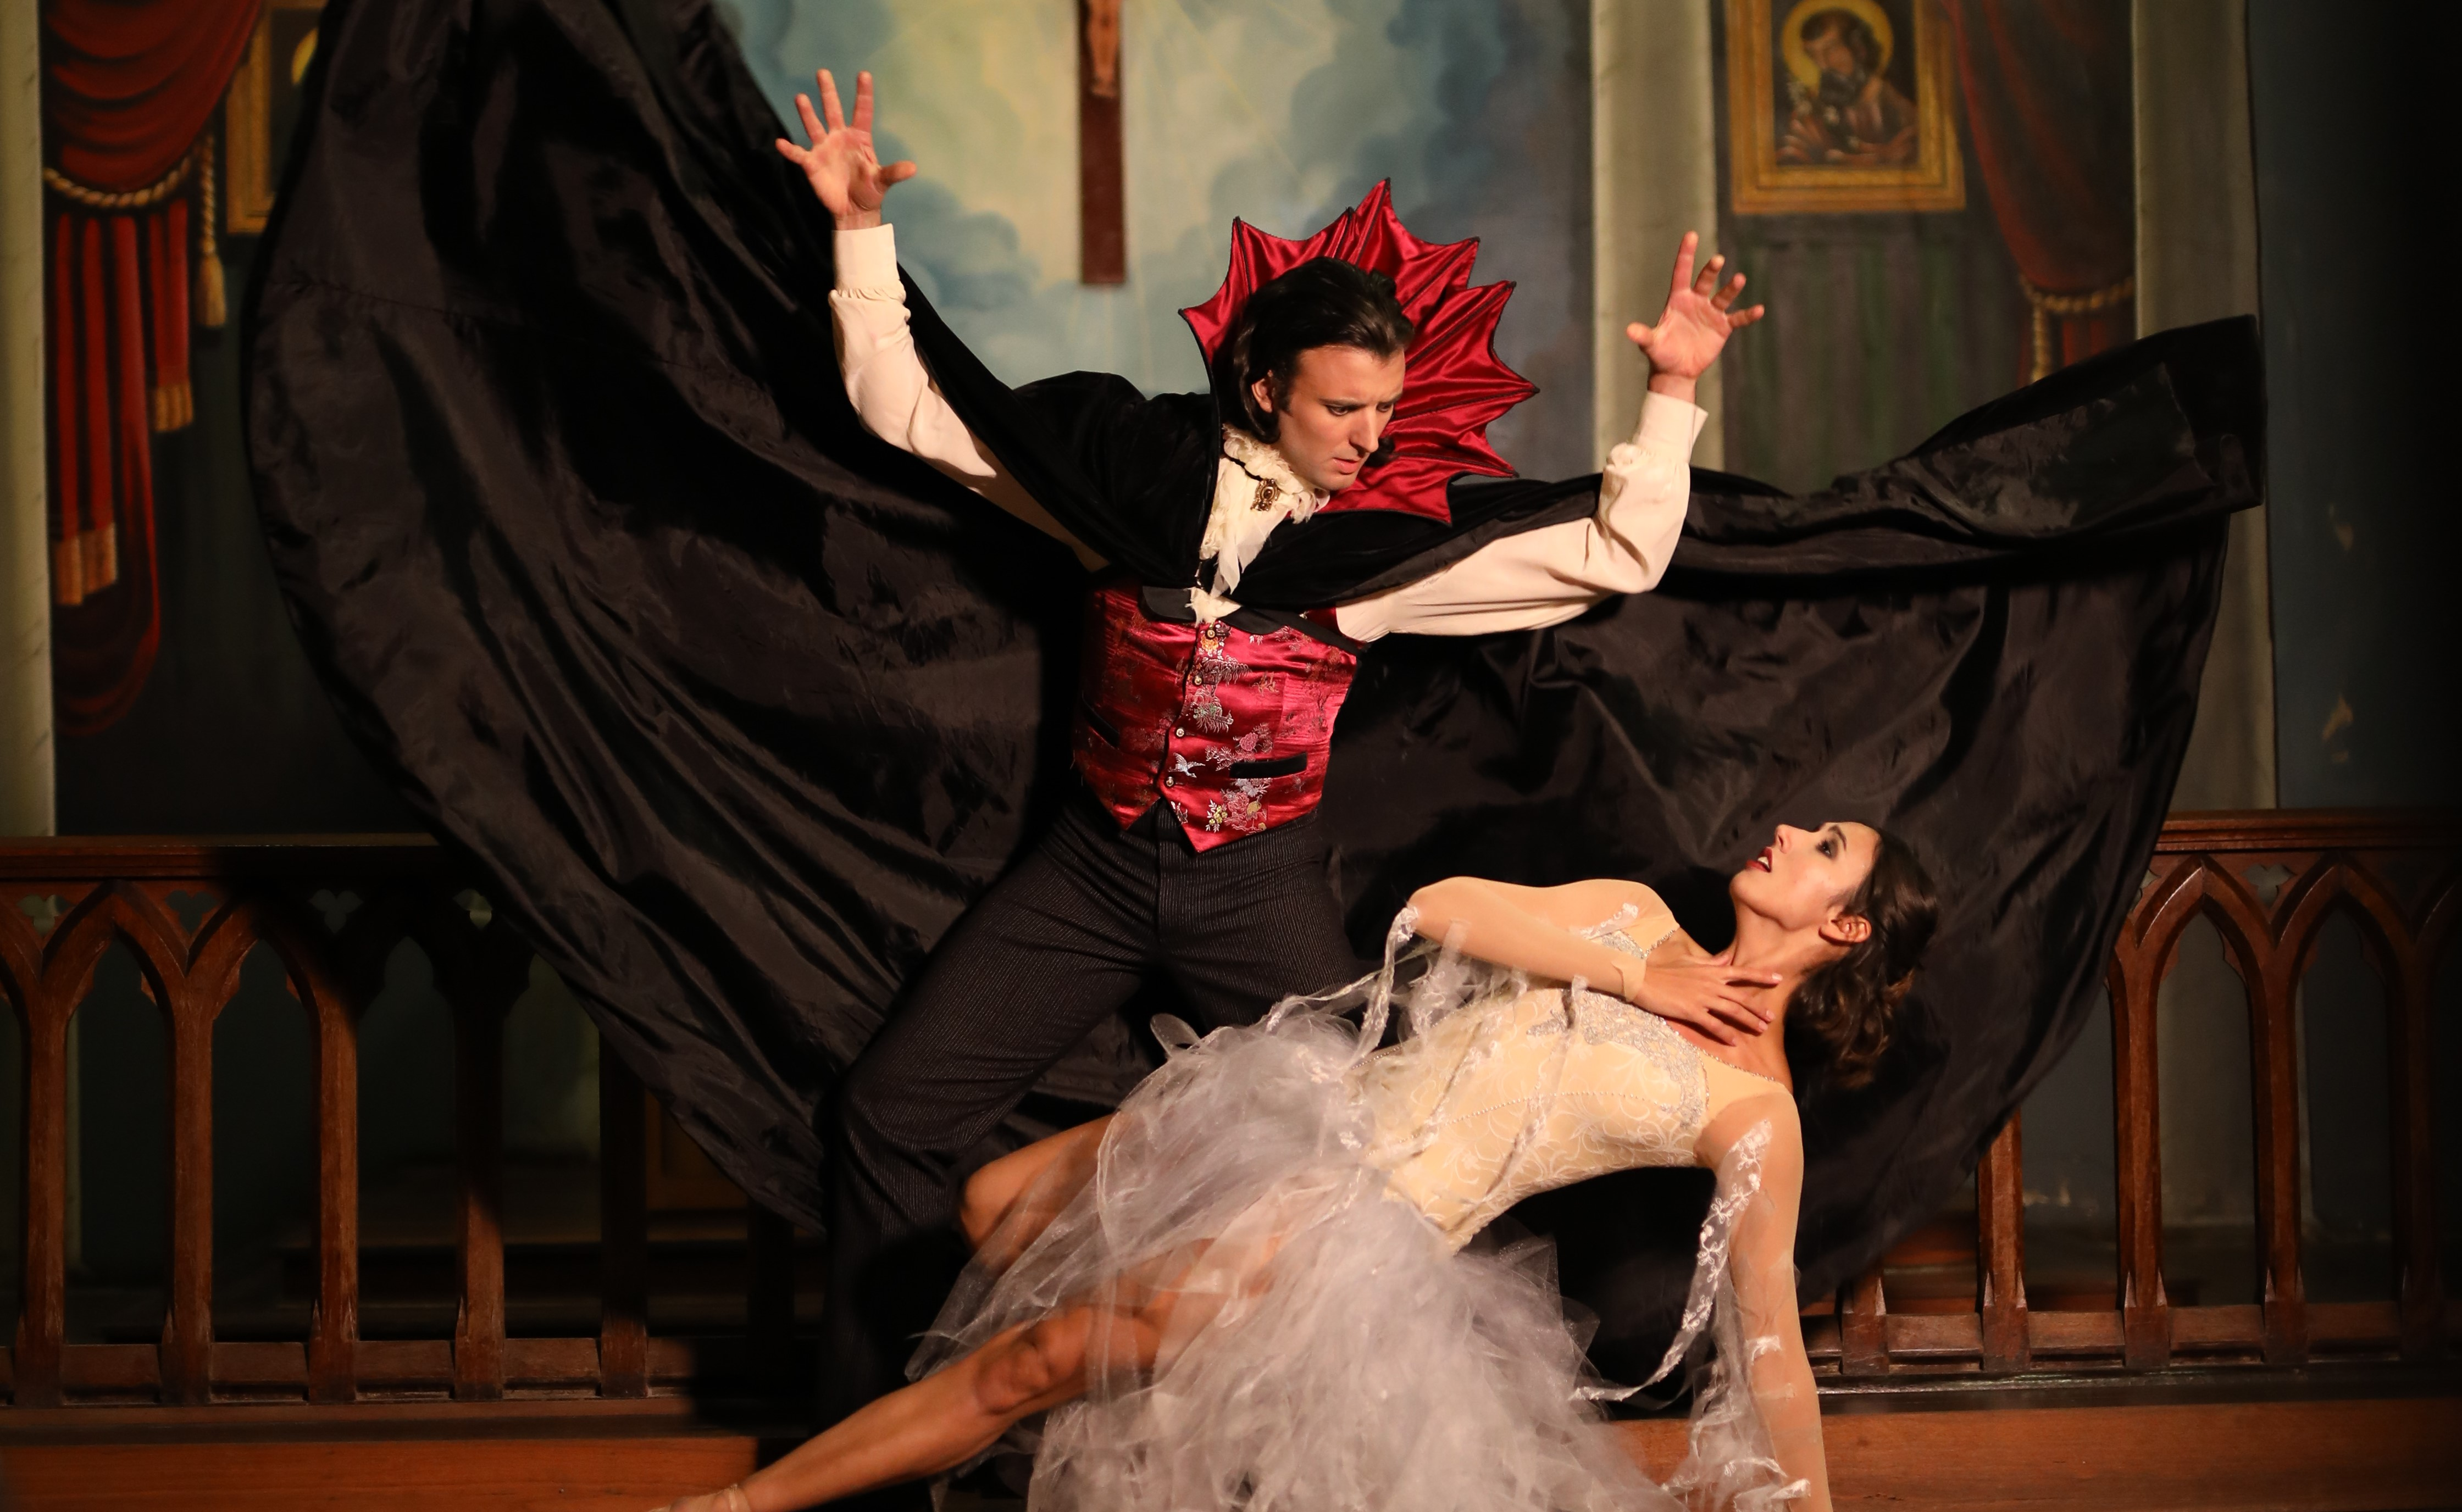 Dracula leaning over his love